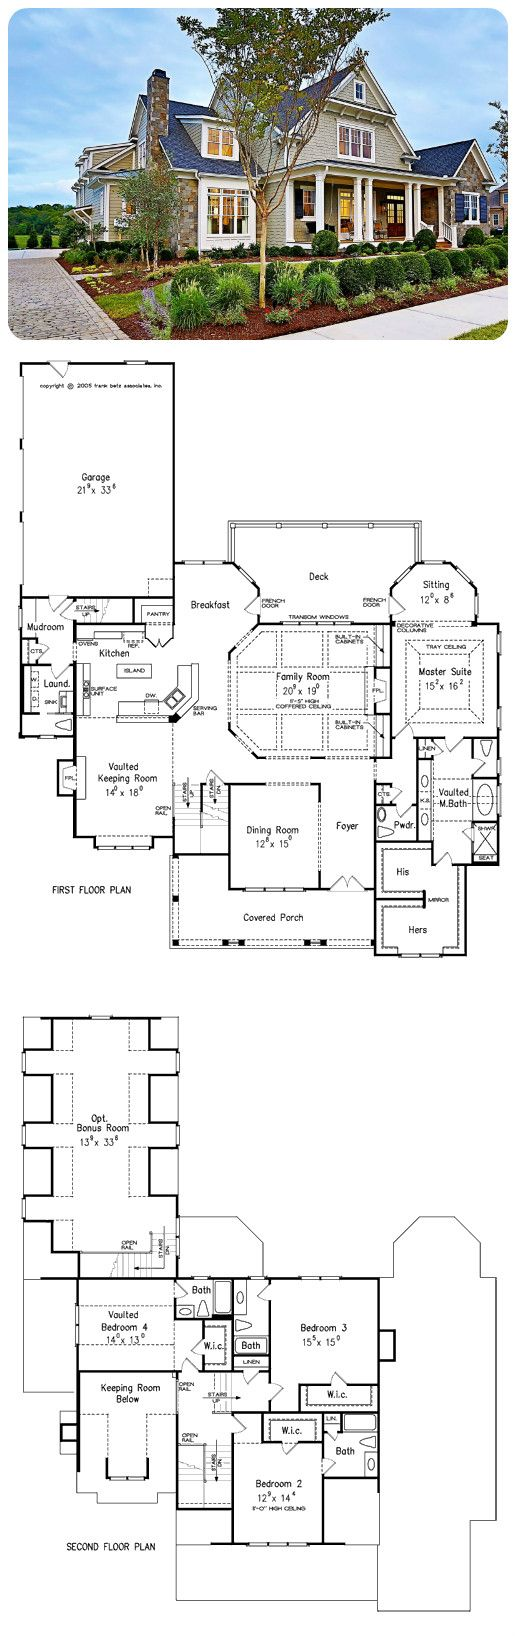 Best 25+ Floor plans ideas on Pinterest | House floor plans, House ...